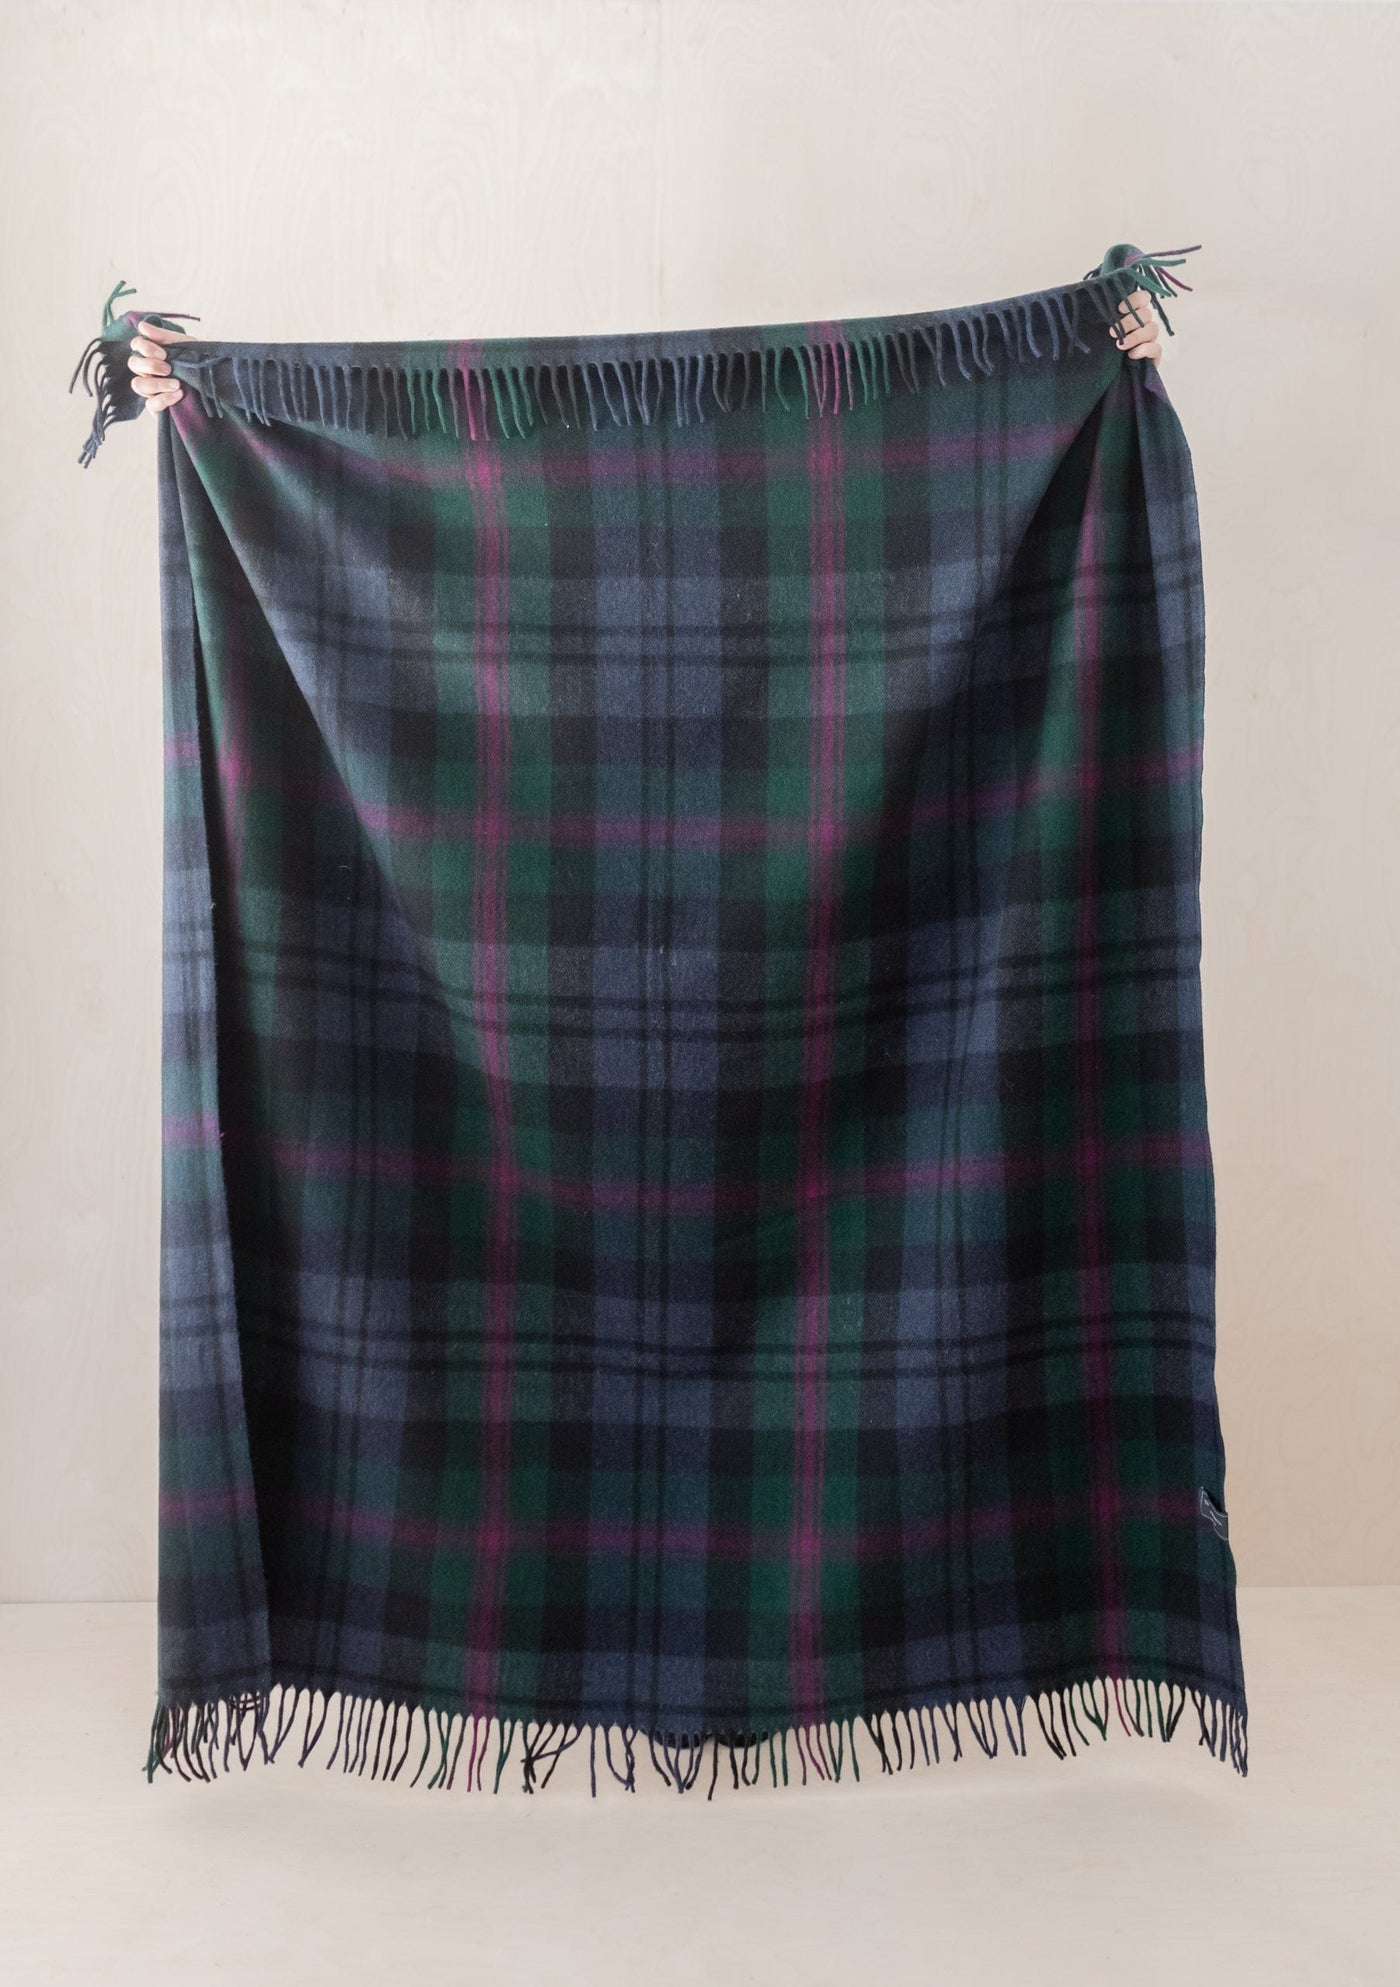 Recycled Wool Blanket in Baird Tartan